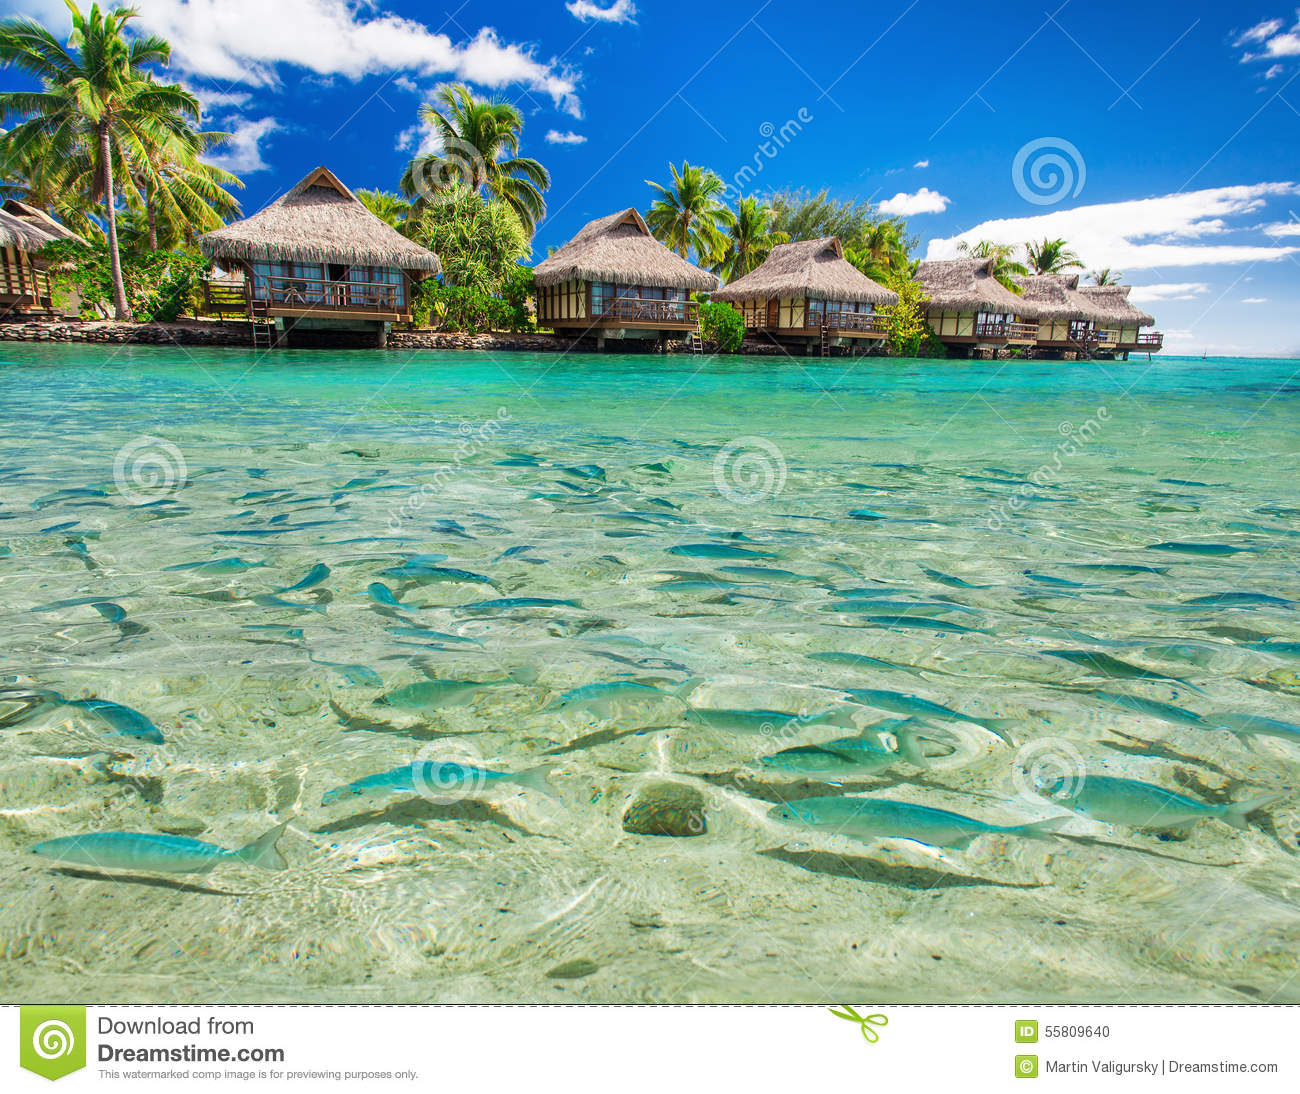 Fish swimming in the lagoon with overwater villas and palm for Dream of fish swimming